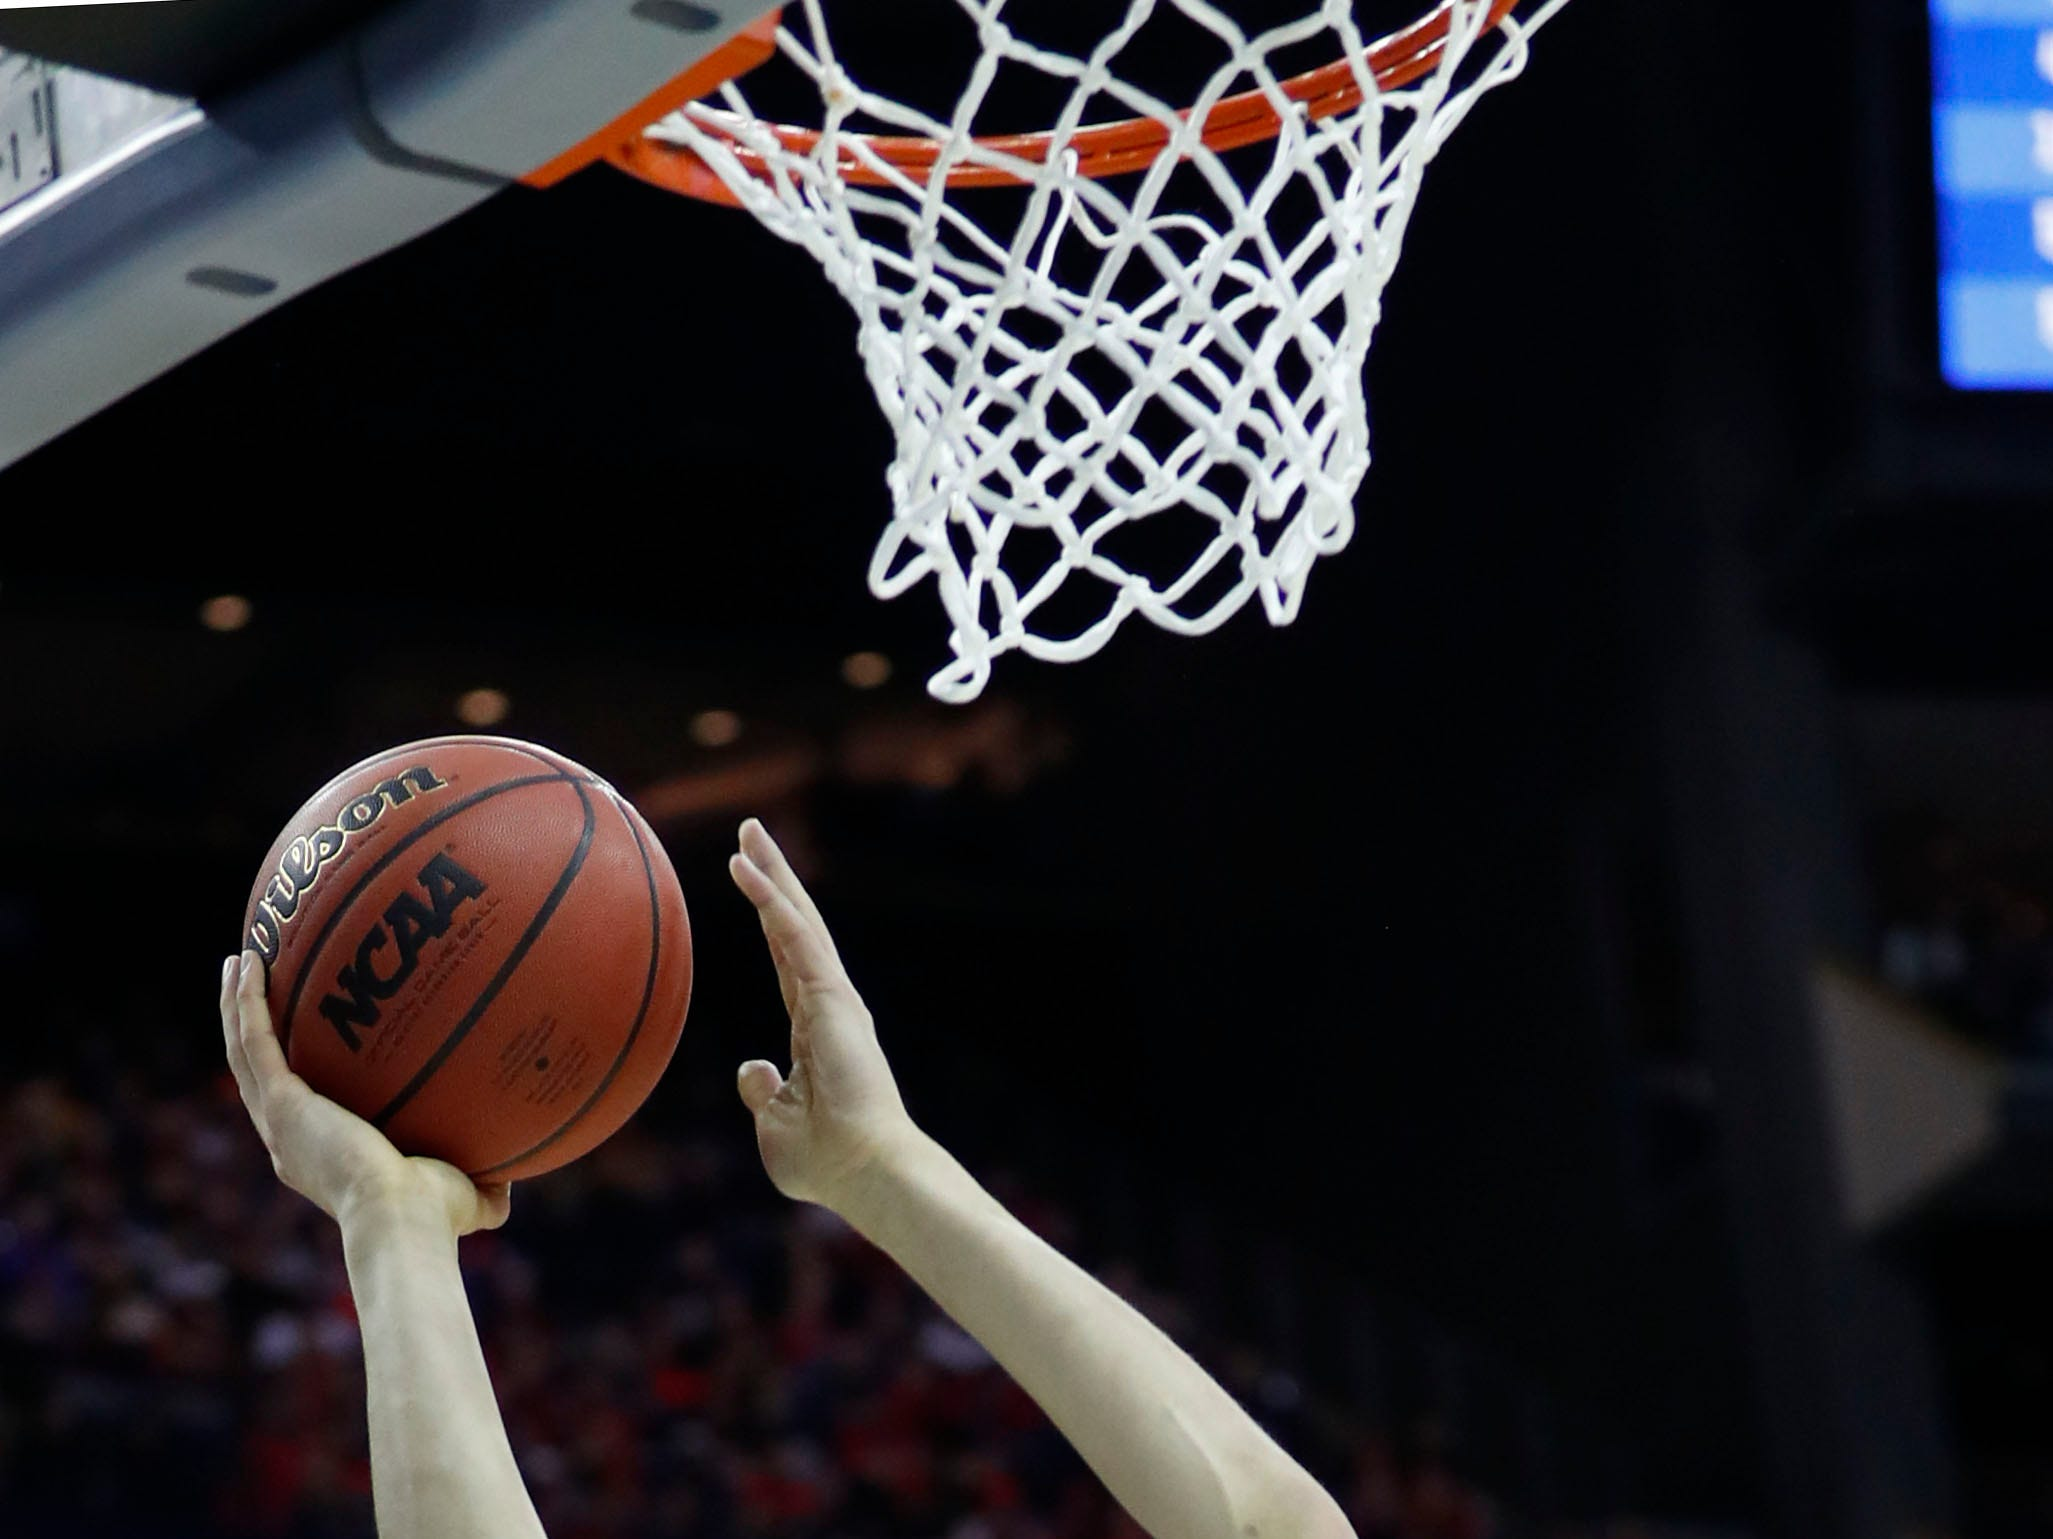 Mar 22, 2019; Columbus, OH, USA; Iowa Hawkeyes forward Luka Garza (55) jumps to the basket in the first half against the Cincinnati Bearcats in the first round of the 2019 NCAA Tournament at Nationwide Arena. Mandatory Credit: Rick Osentoski-USA TODAY Sports